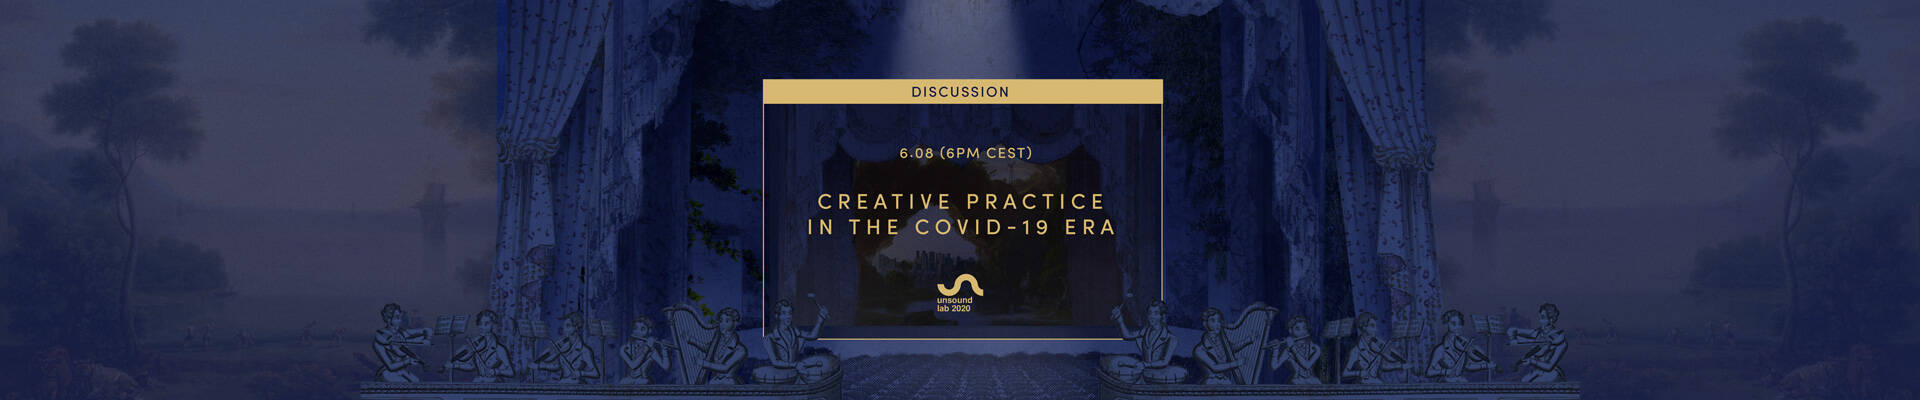 Creative Practice in the COVID-19 Era